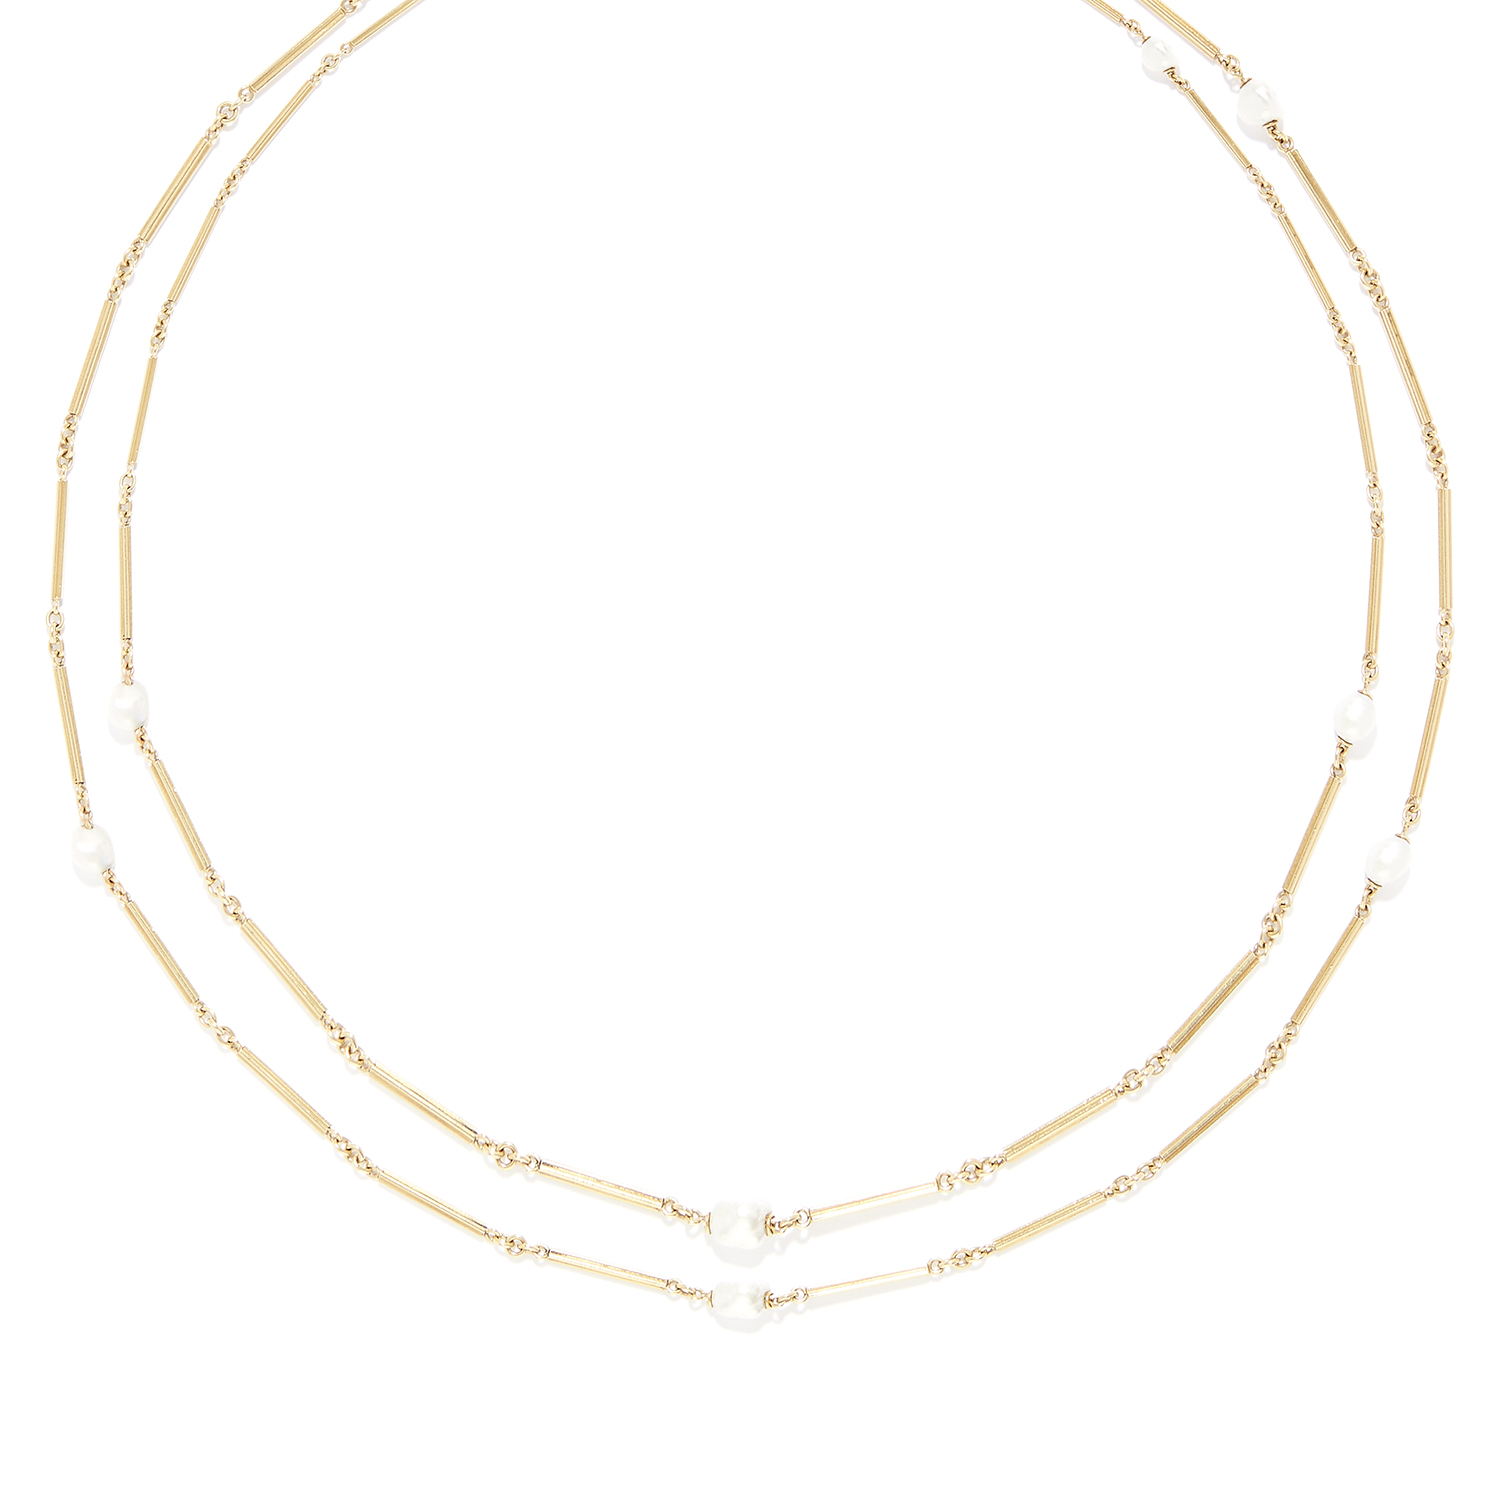 Los 25 - ANTIQUE PEARL LONGCHAIN SAUTOIR NECKLACE in high carat yellow gold, comprising a single row of fancy